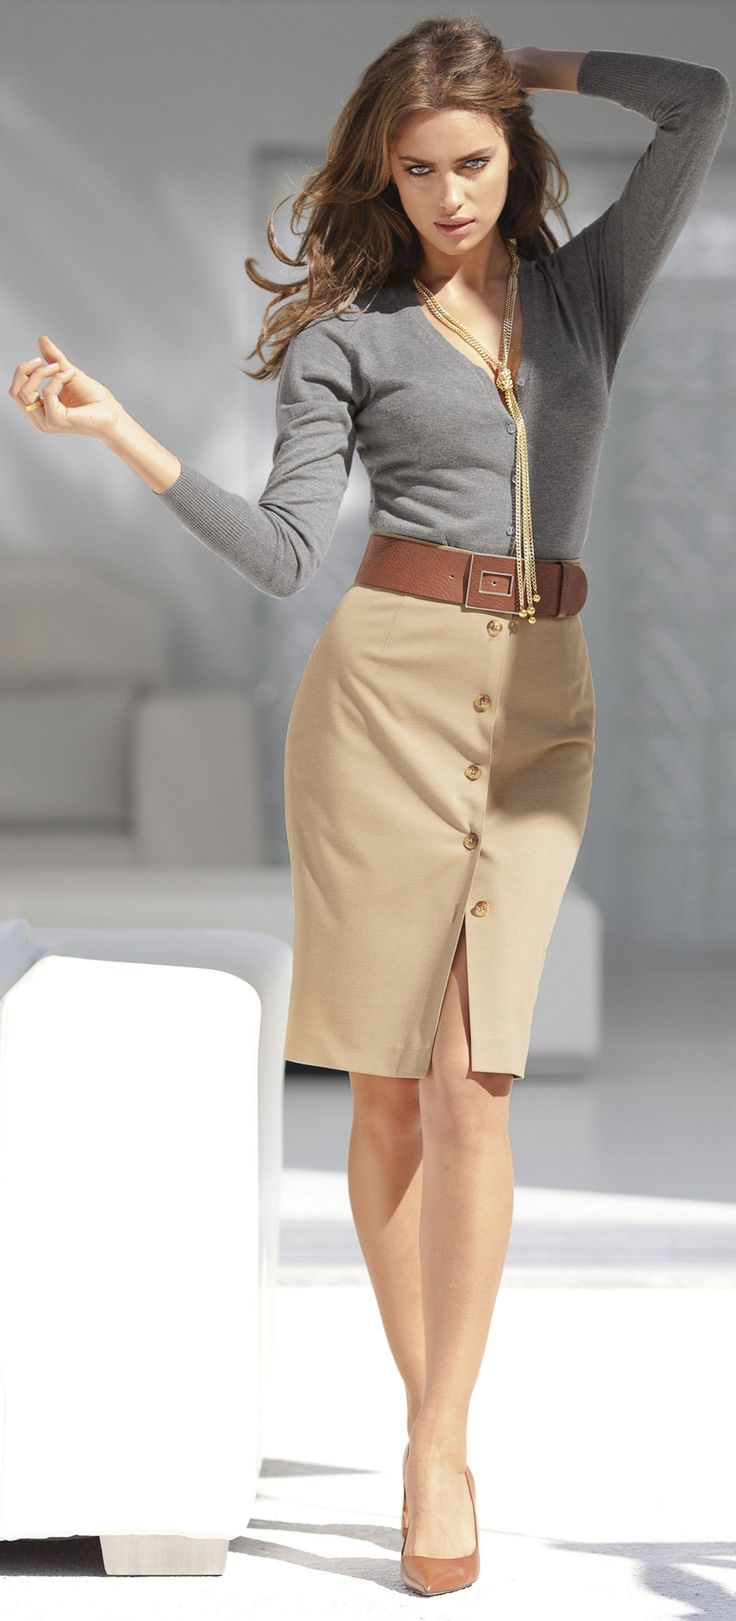 Charming And Sexy Outfits For Work